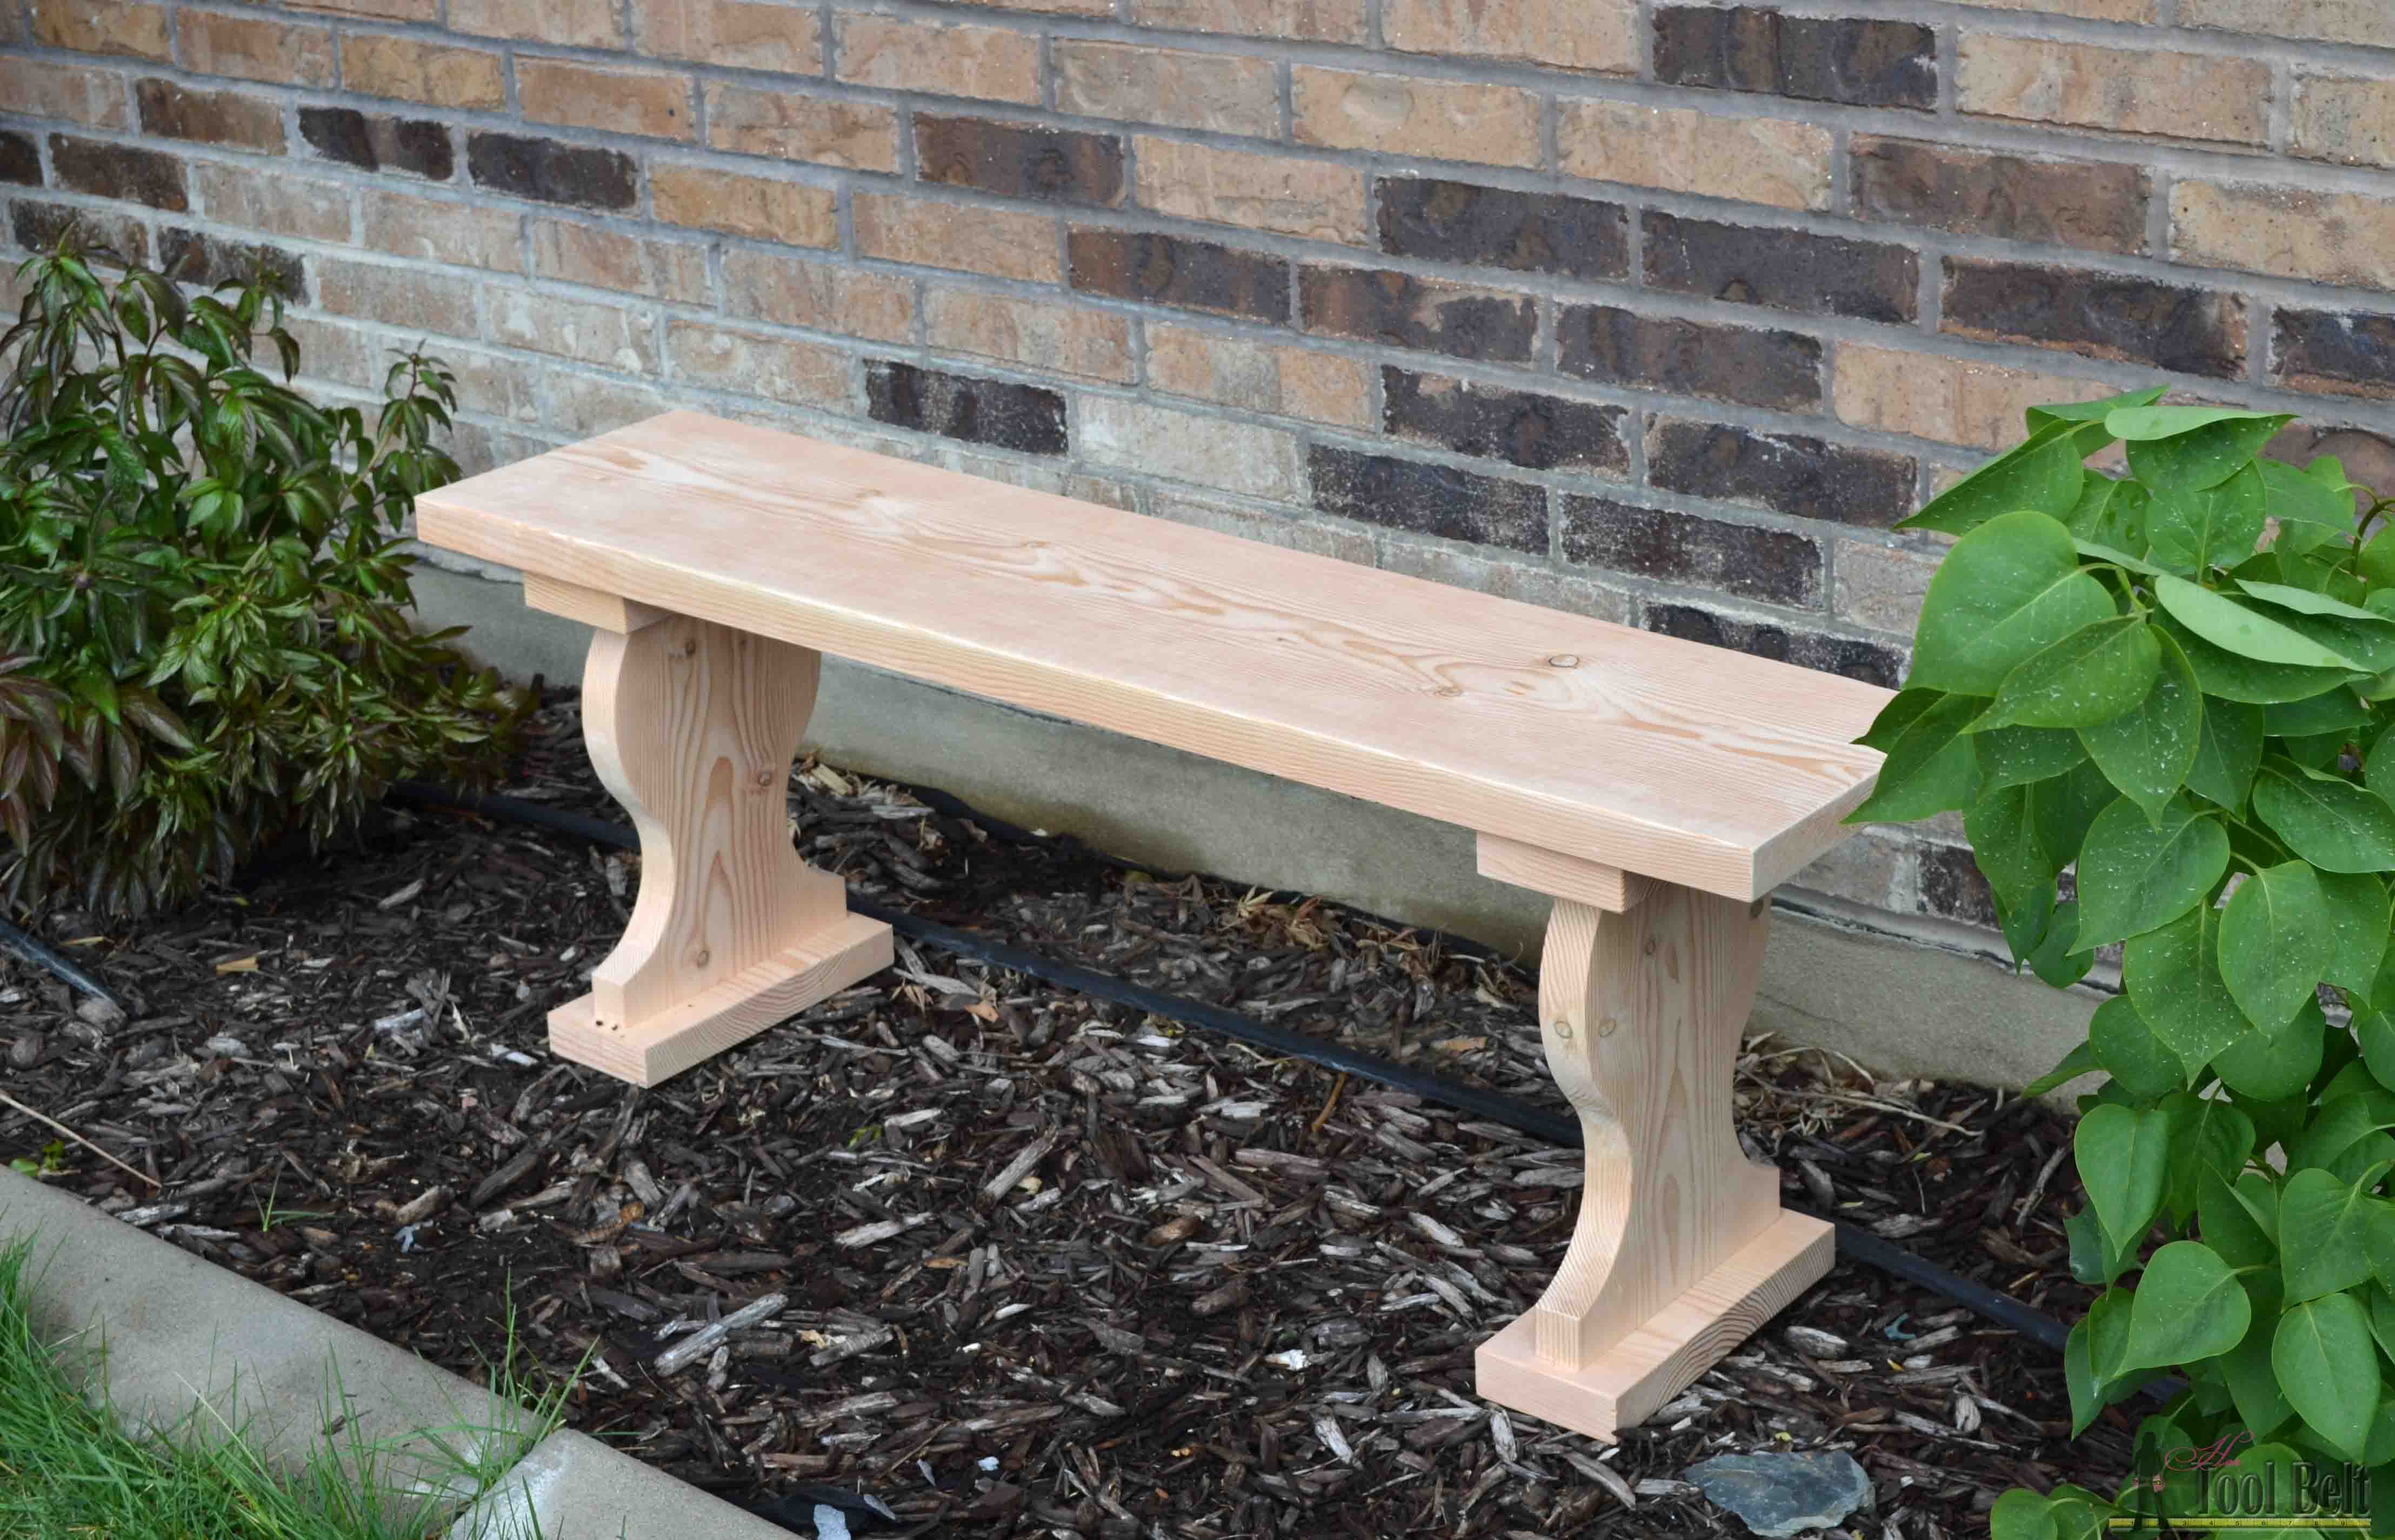 Cute Little Outdoor Garden Bench, Only Costs About $13 To Build And Uses  One 2x12